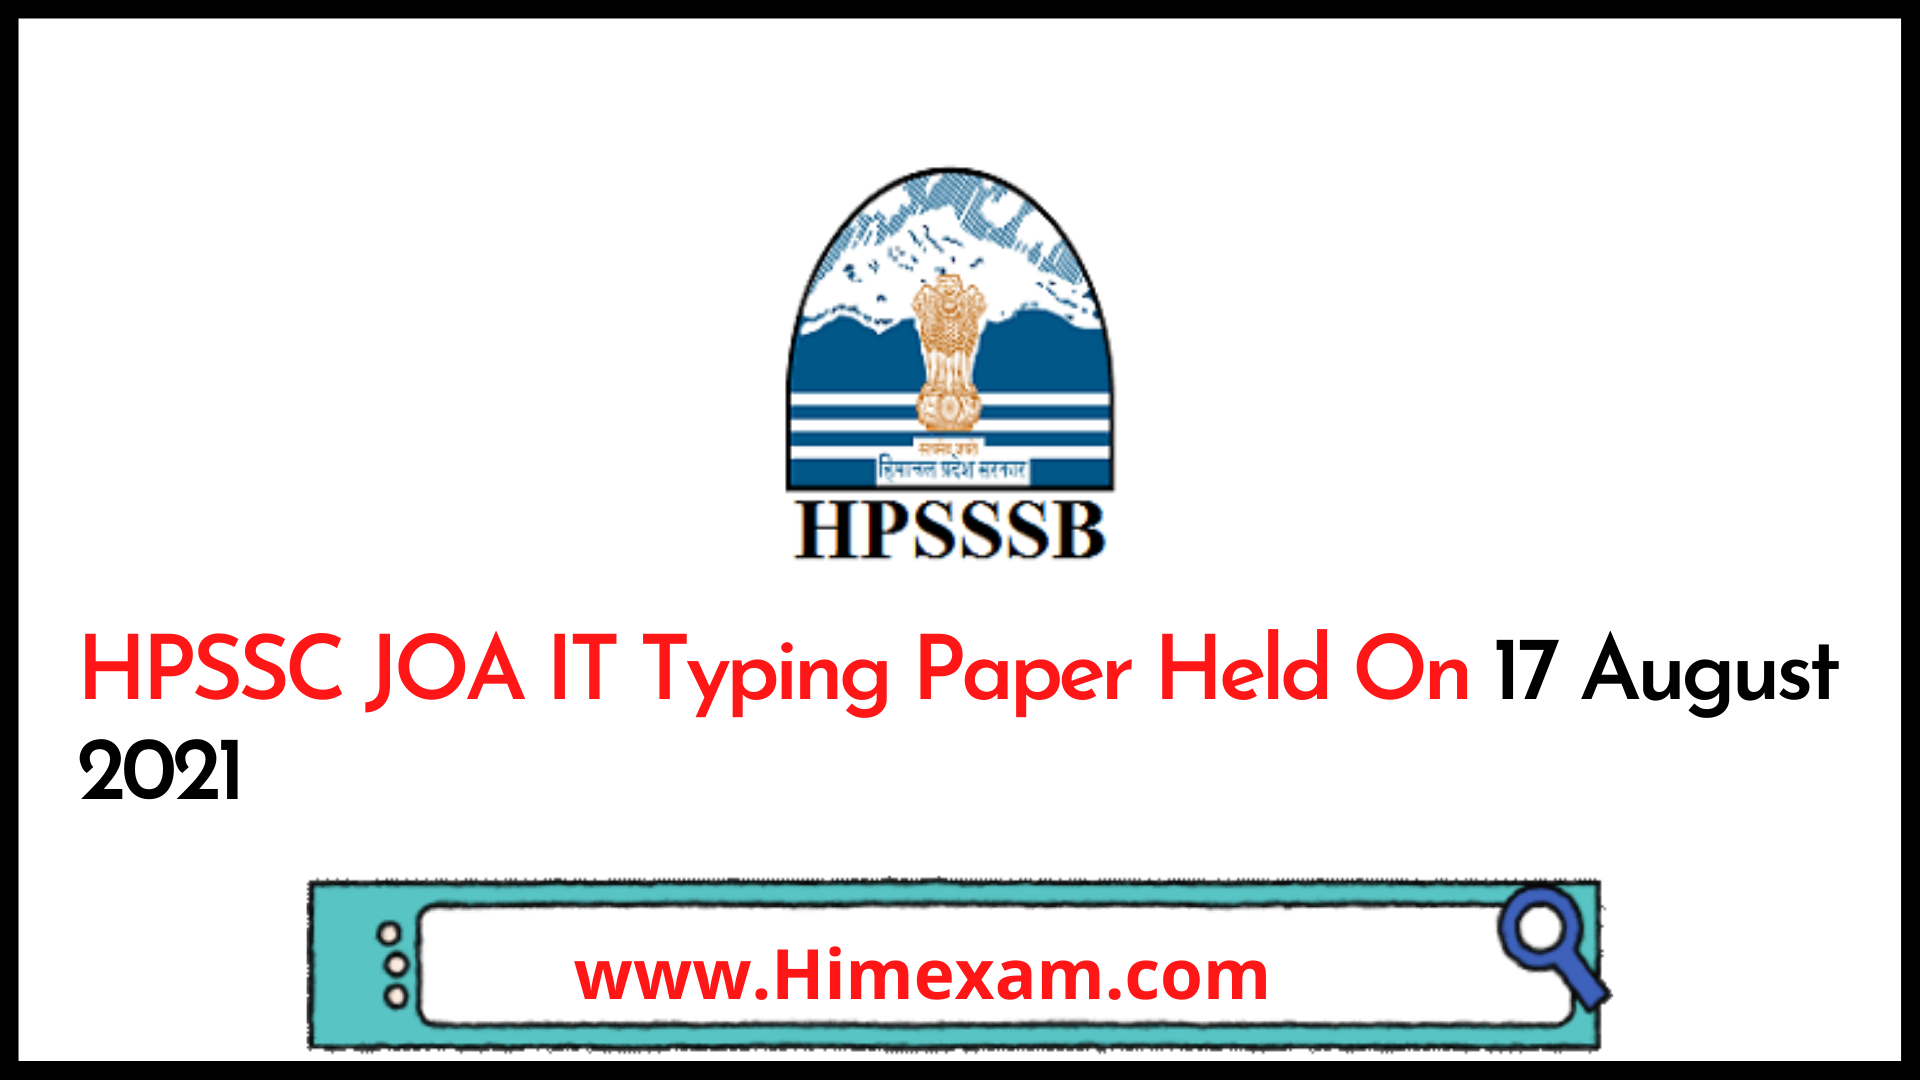 HPSSC JOA IT Typing Paper Held On 17 August 2021